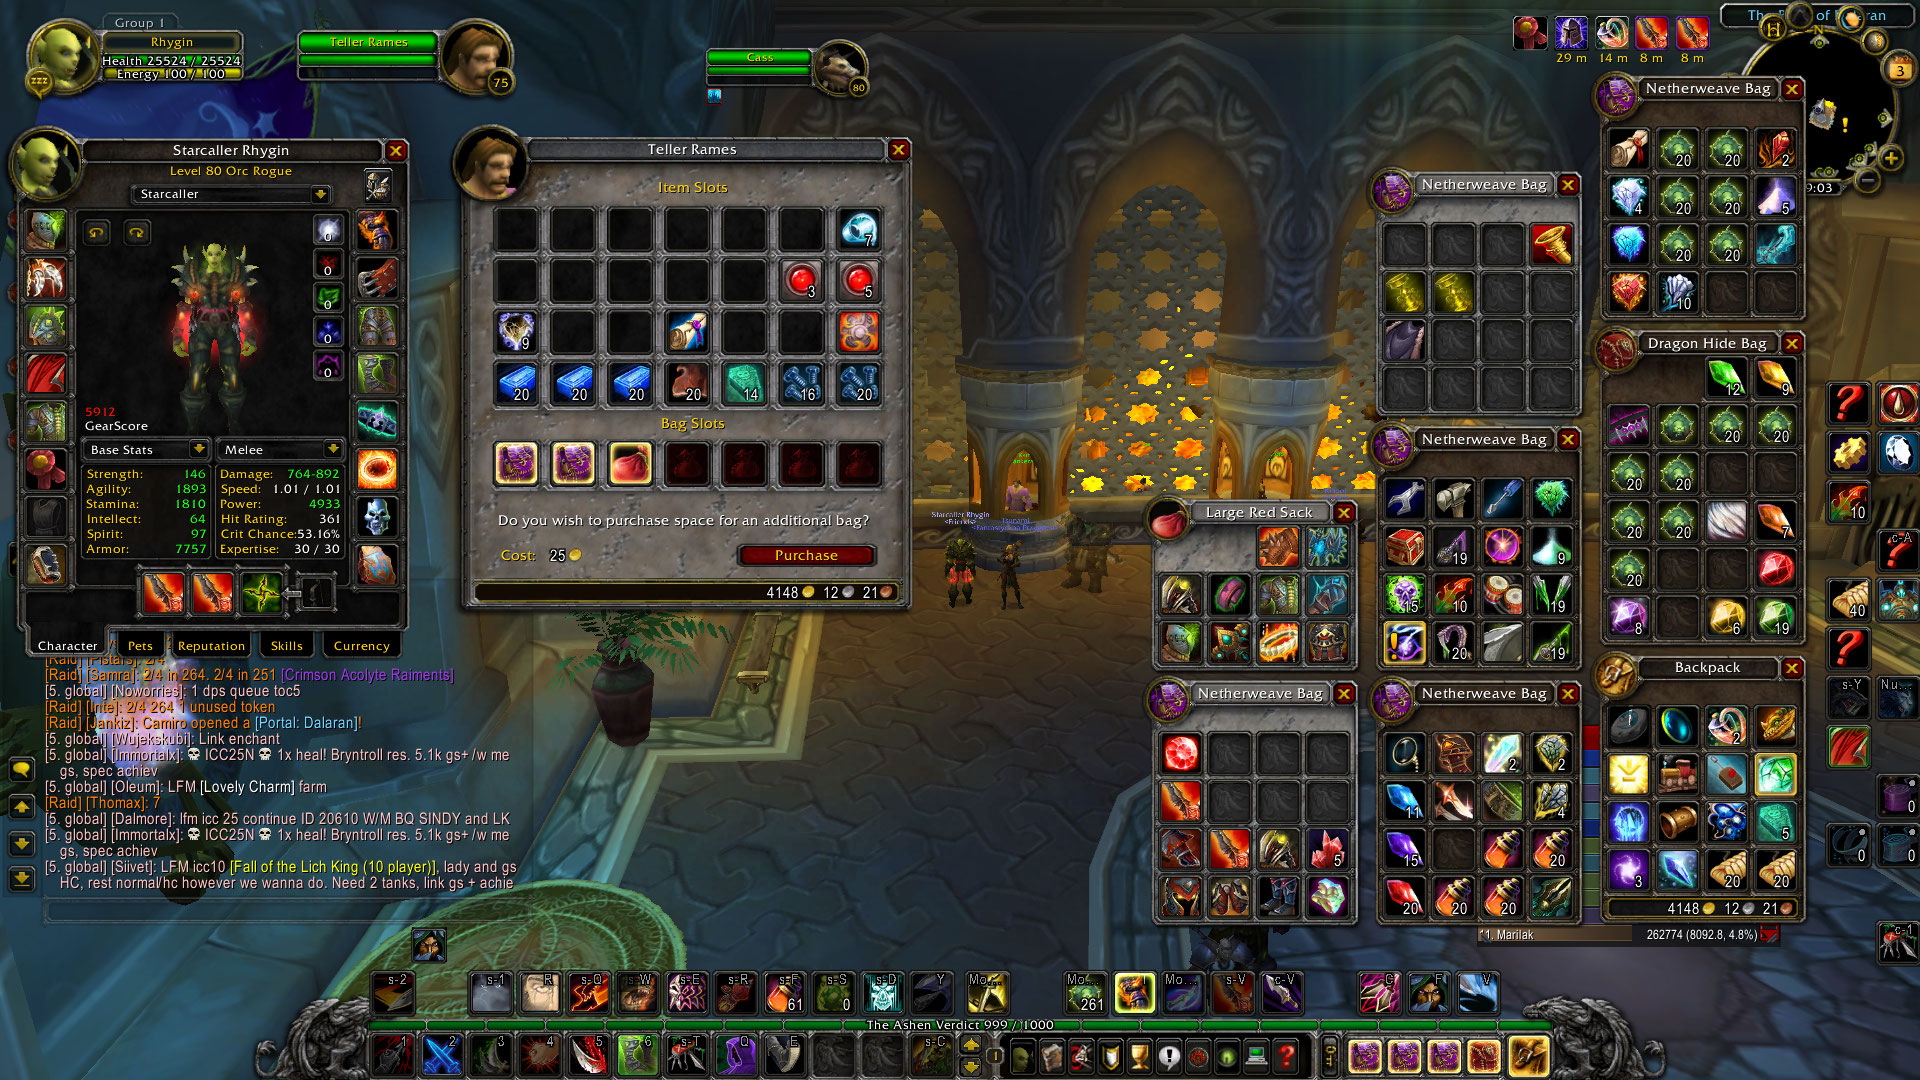 Selling] Level 80 Mage, Rogue(Horde and Ally) and Priest for